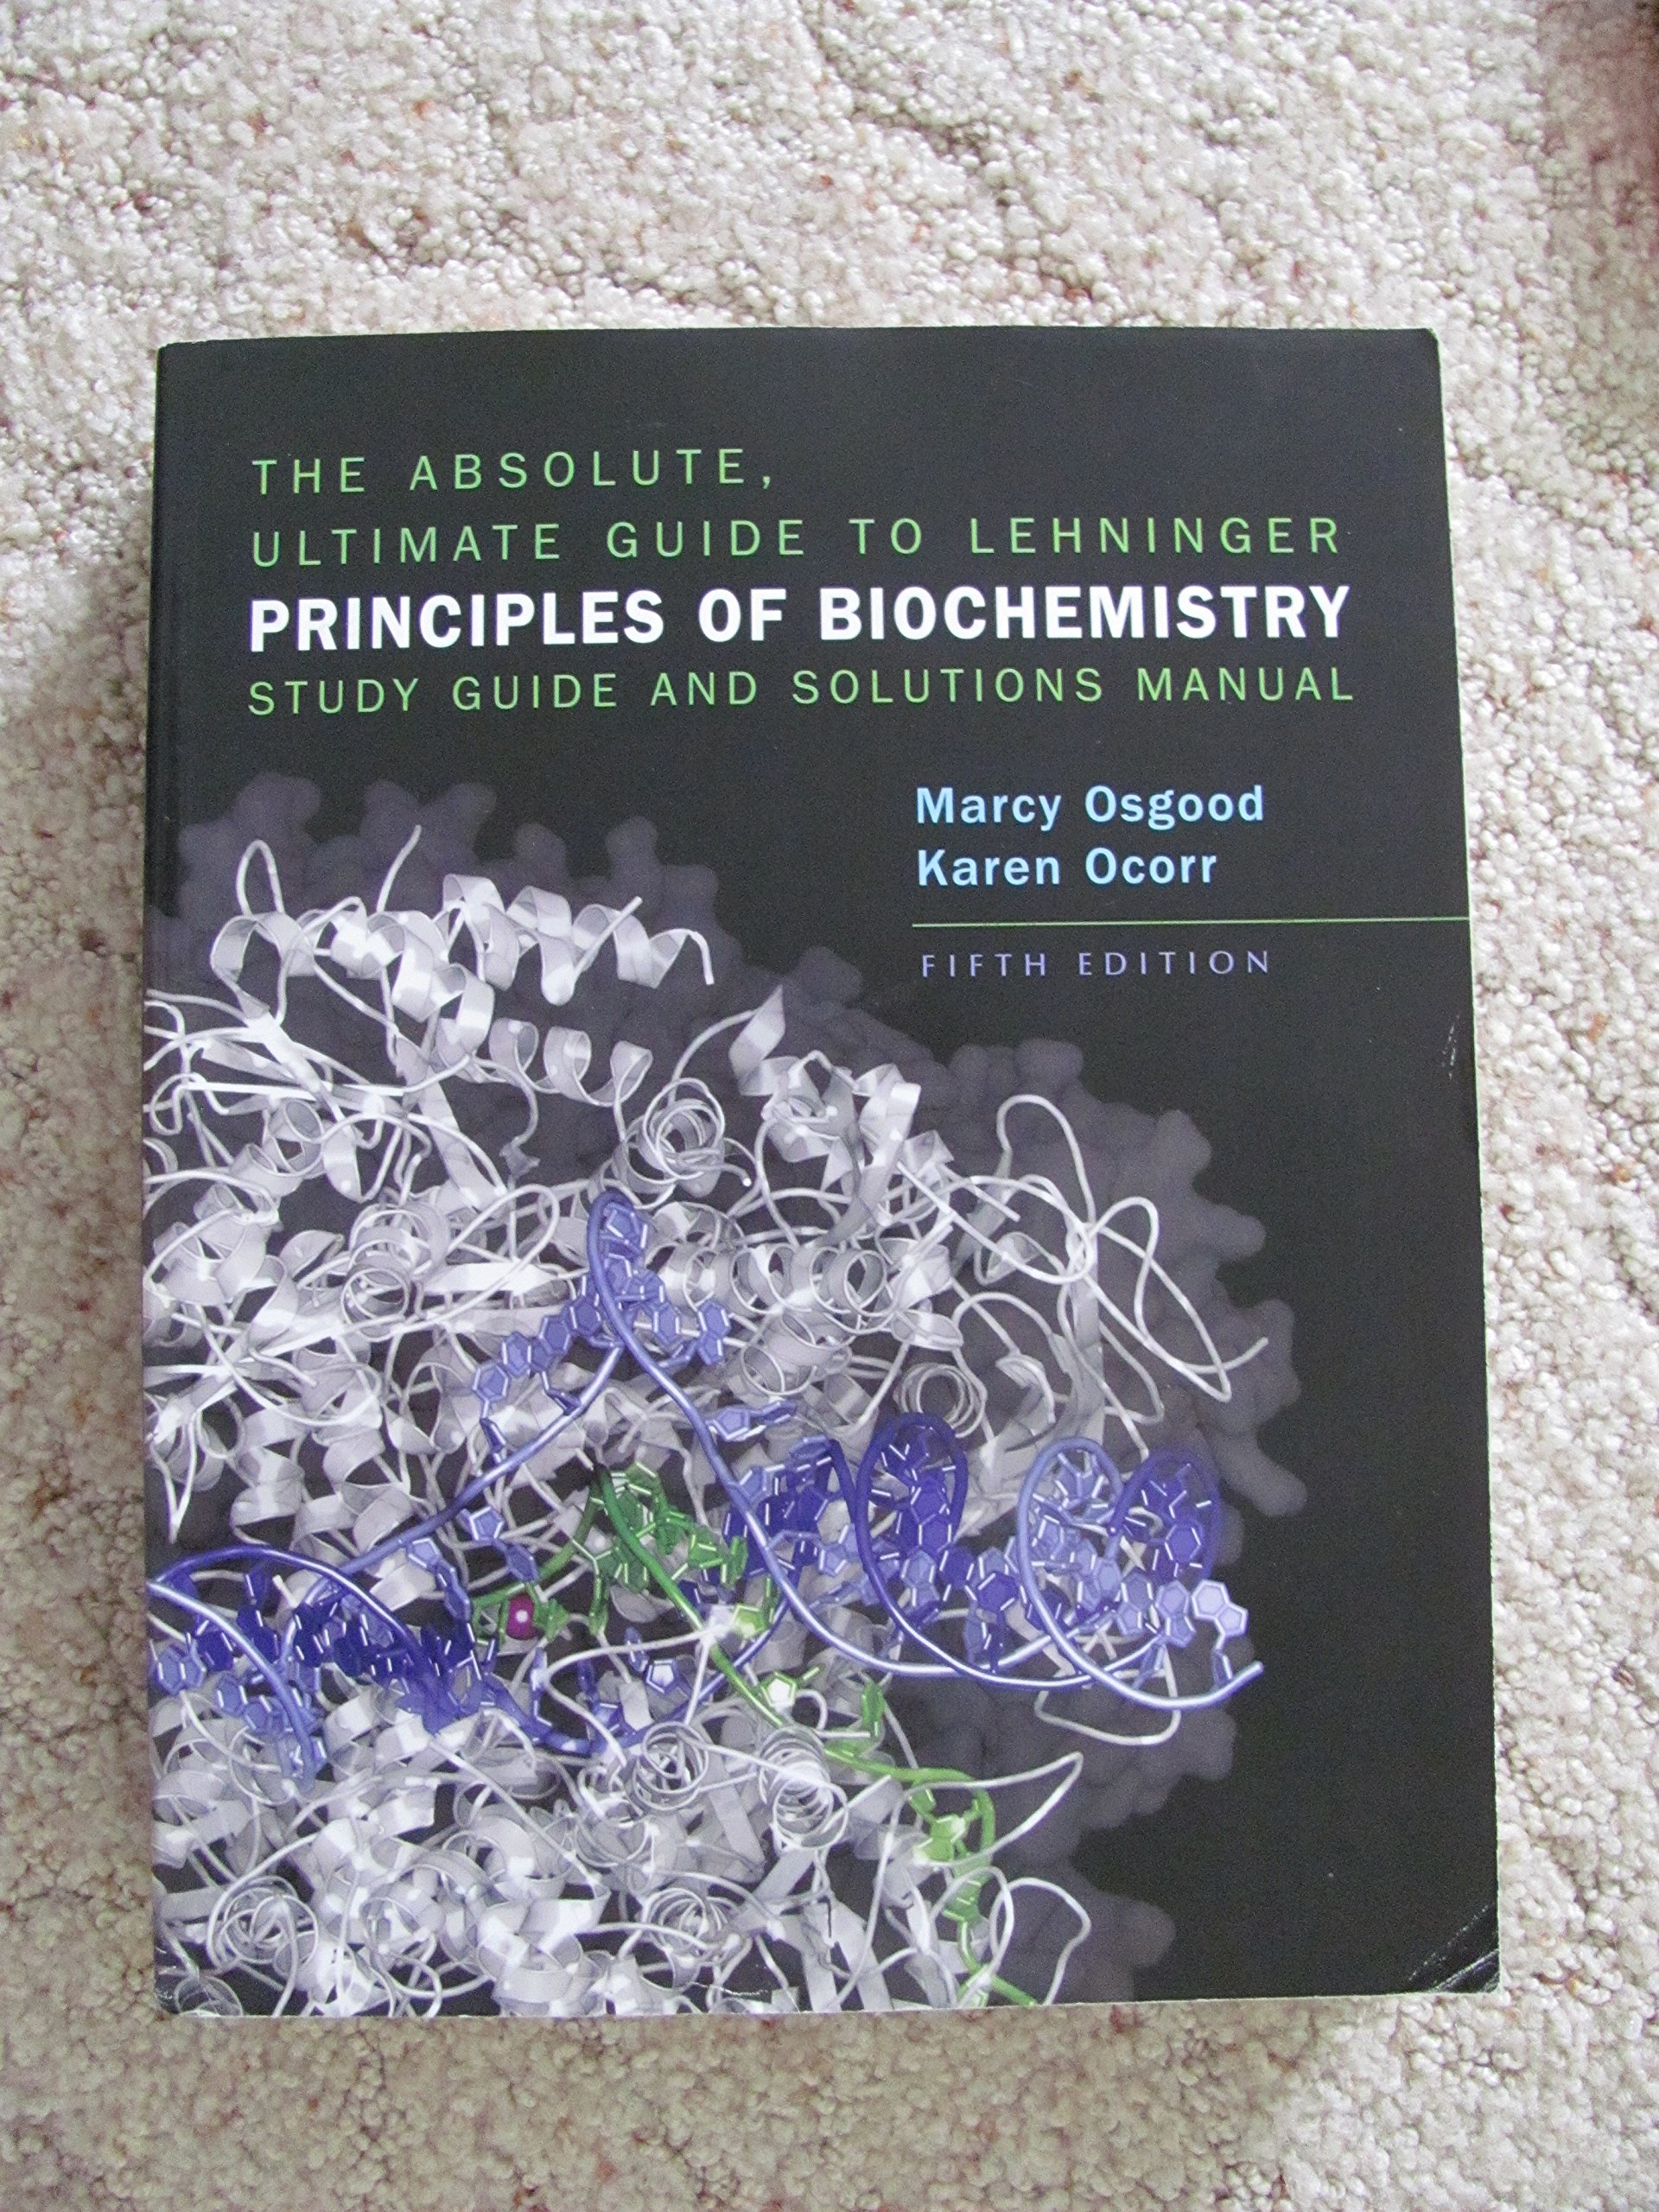 the absolute ultimate guide to lehninger principles of biochemistry rh amazon com Lehninger Biochemistry Test Bank lehninger principles of biochemistry solutions manual 6th edition pdf